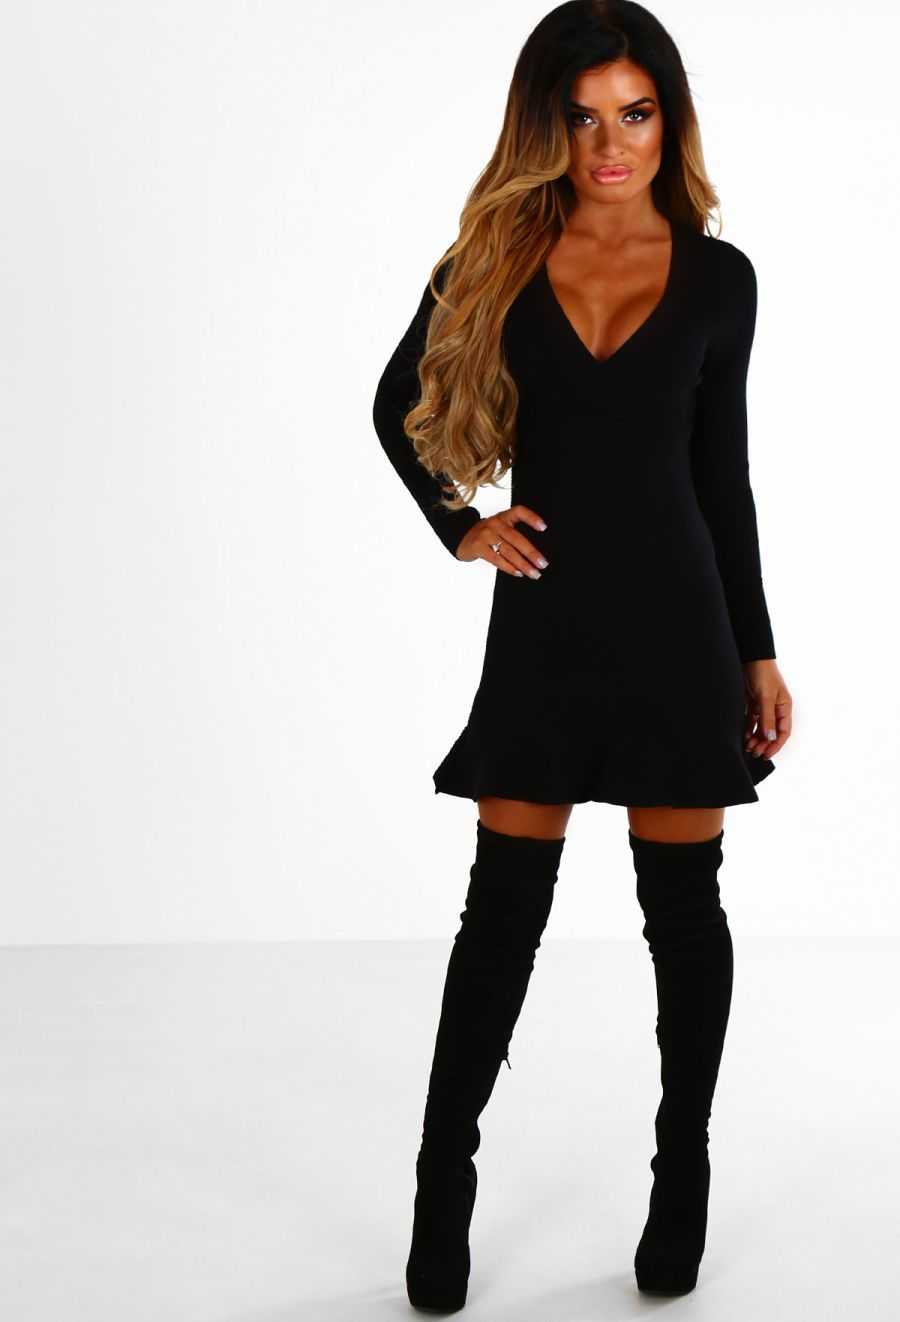 Pink boutique lives for superglam fashion which is why we offer